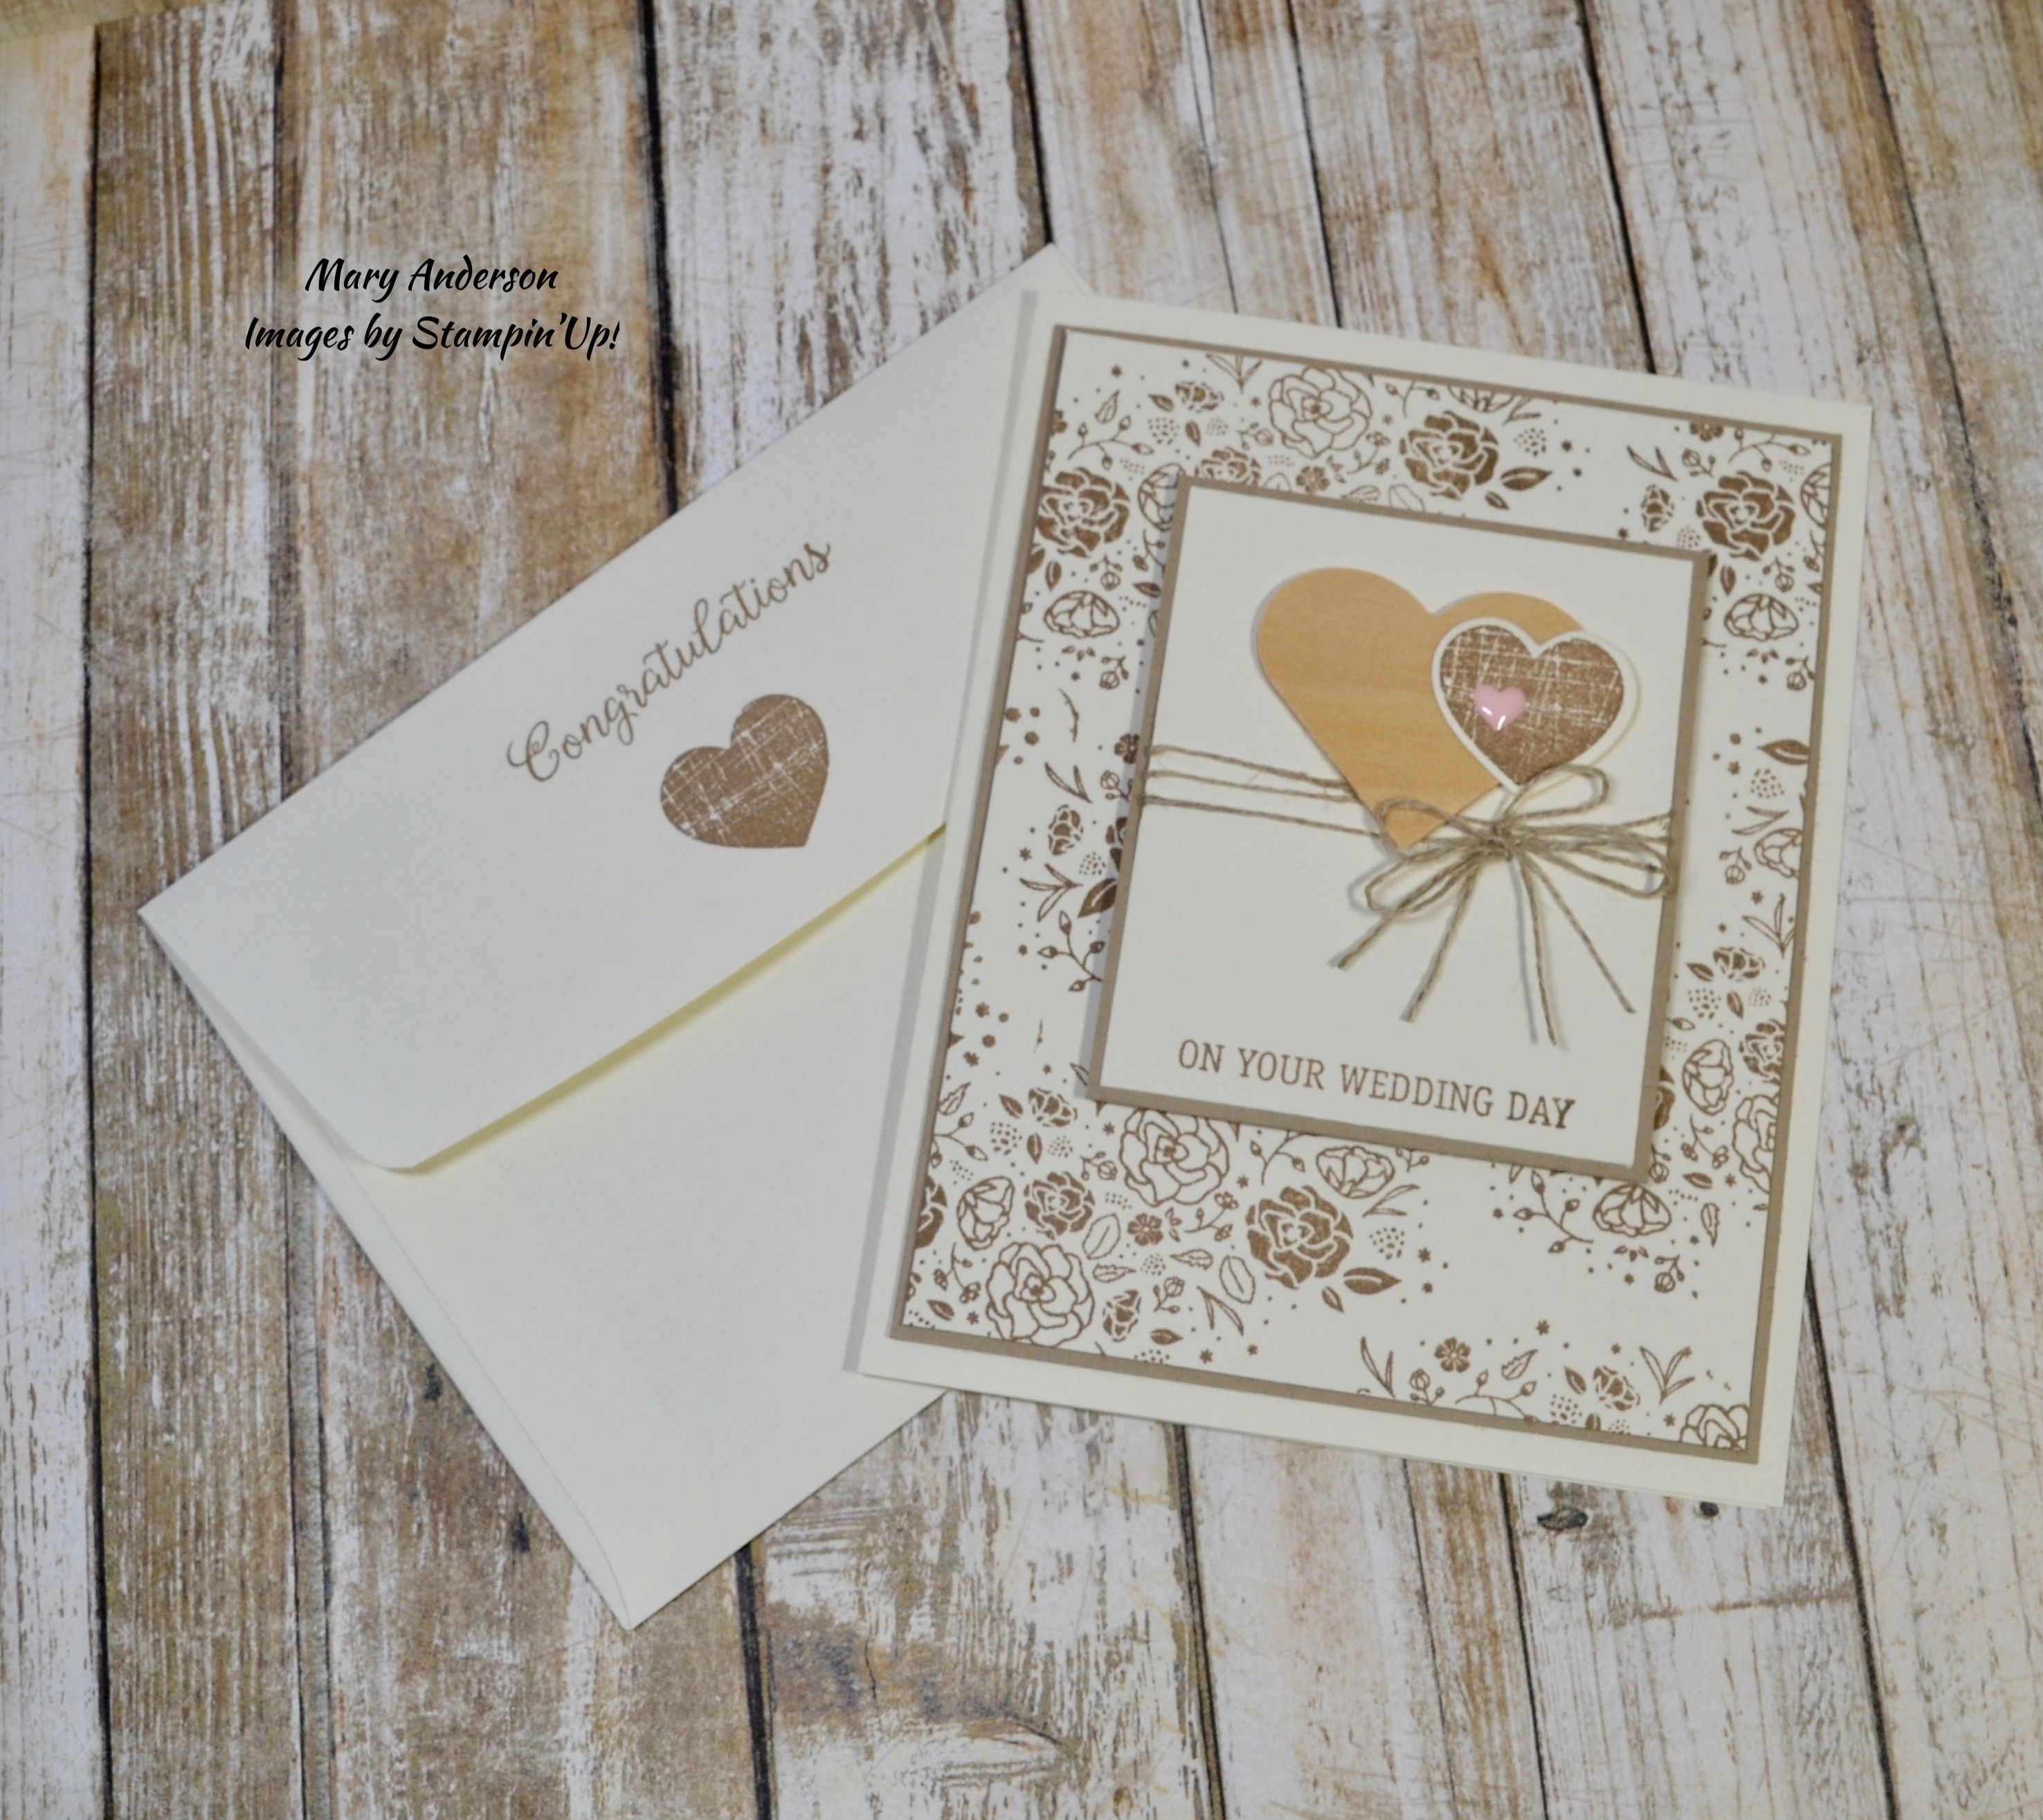 Wood Words Wedding Card Congratulations on your wedding